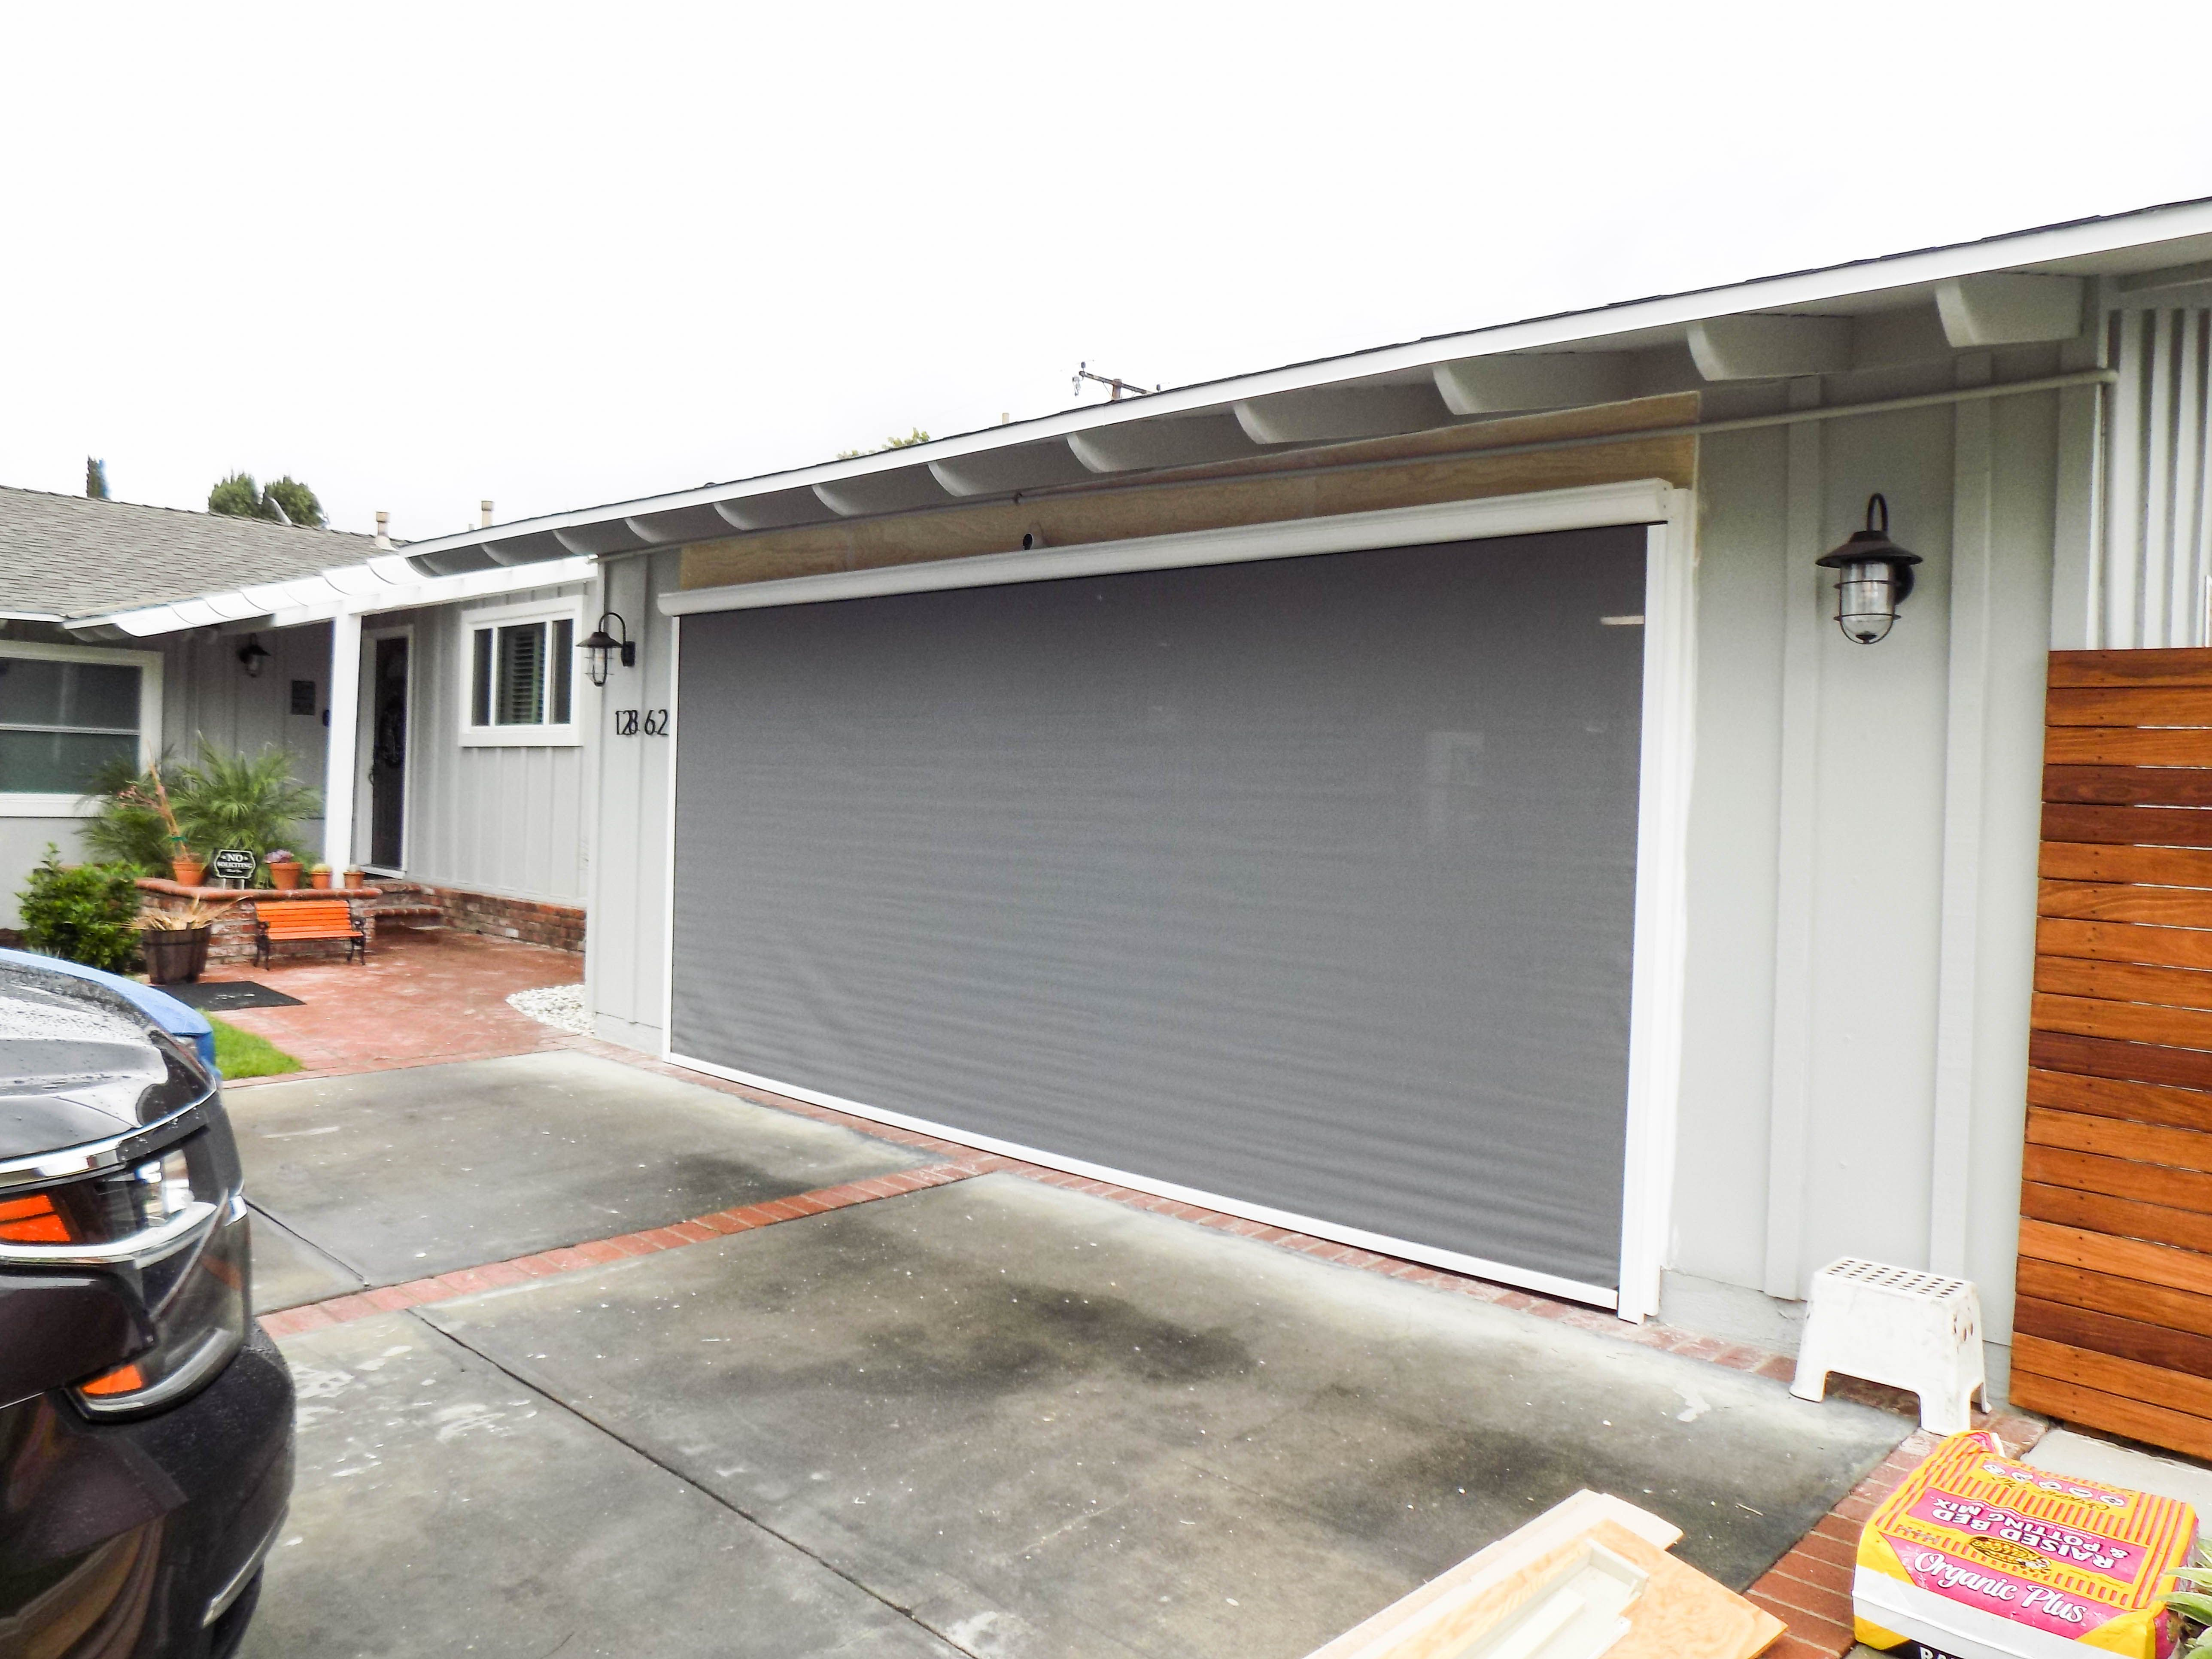 Leave Your Garage Door Open Without Compromising Your Privacy A Custom Built Motorized Power Screen Will Palos Verdes Estates Rancho Palos Verdes Garage Doors